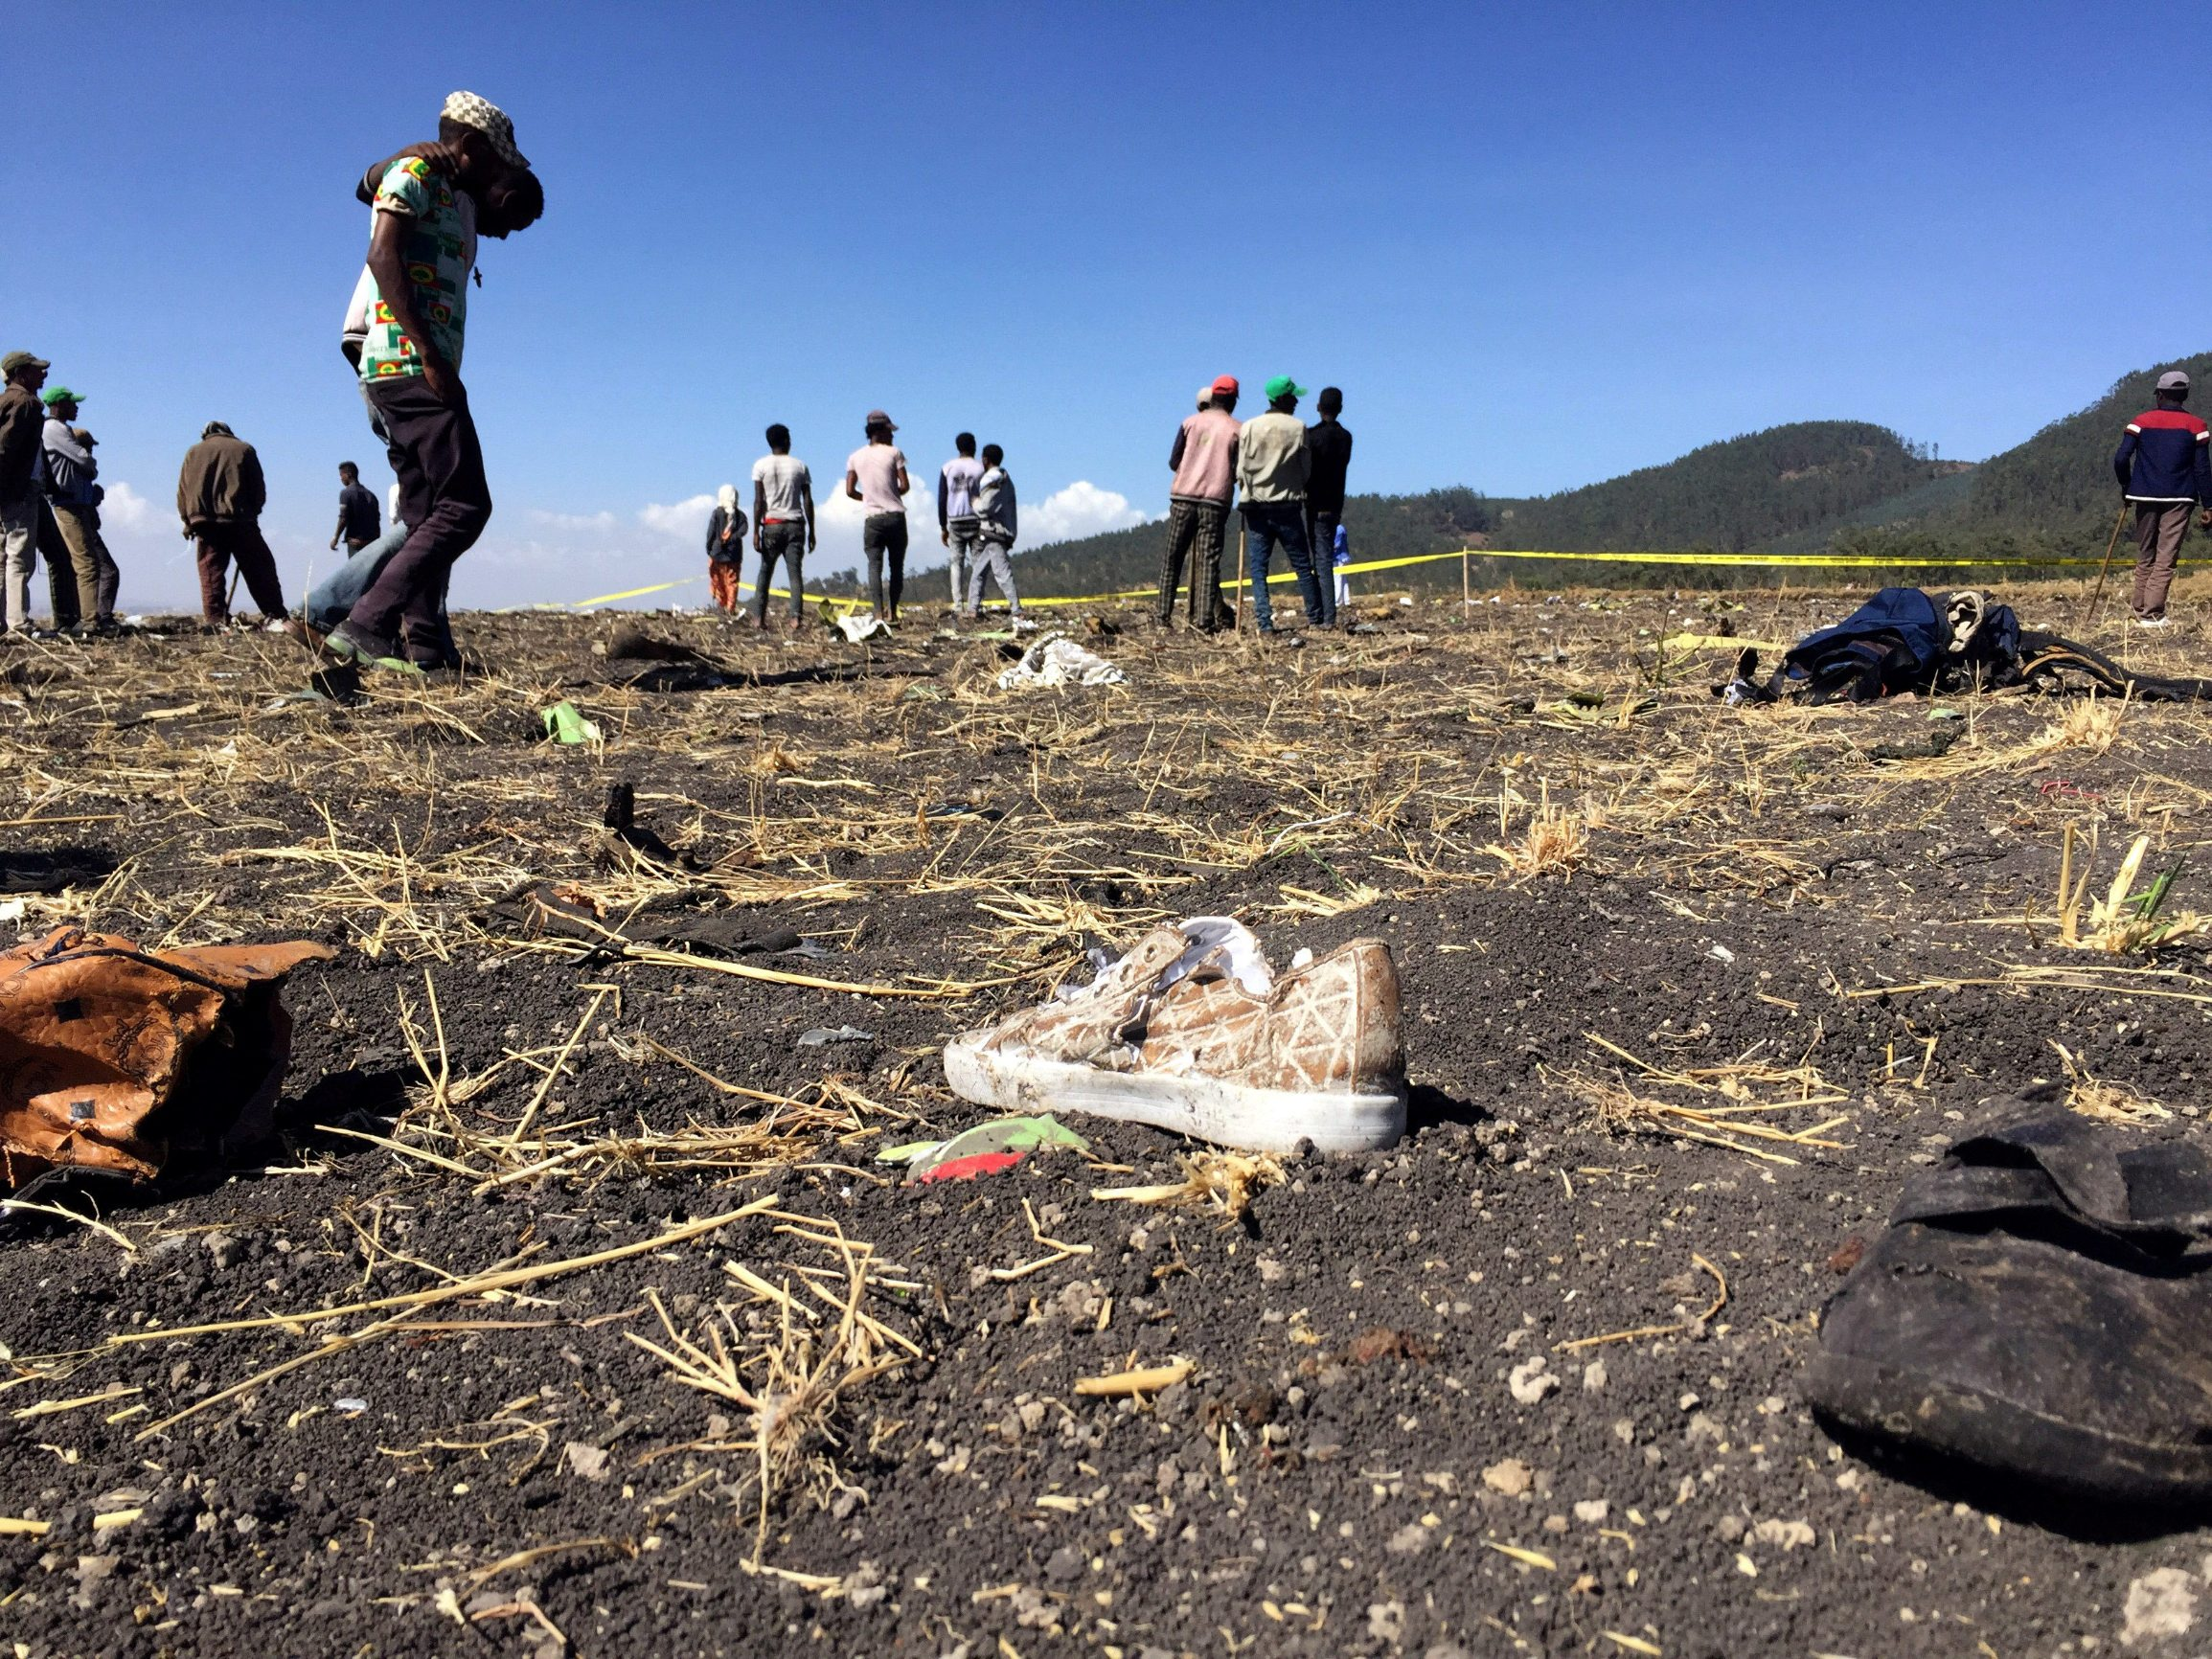 People walk at the scene of the Ethiopian Airlines Flight ET 302 plane crash, near the town of Bishoftu, southeast of Addis Ababa, Ethiopia March 10, 2019. REUTERS/Tiksa Negeri     TPX IMAGES OF THE DAY